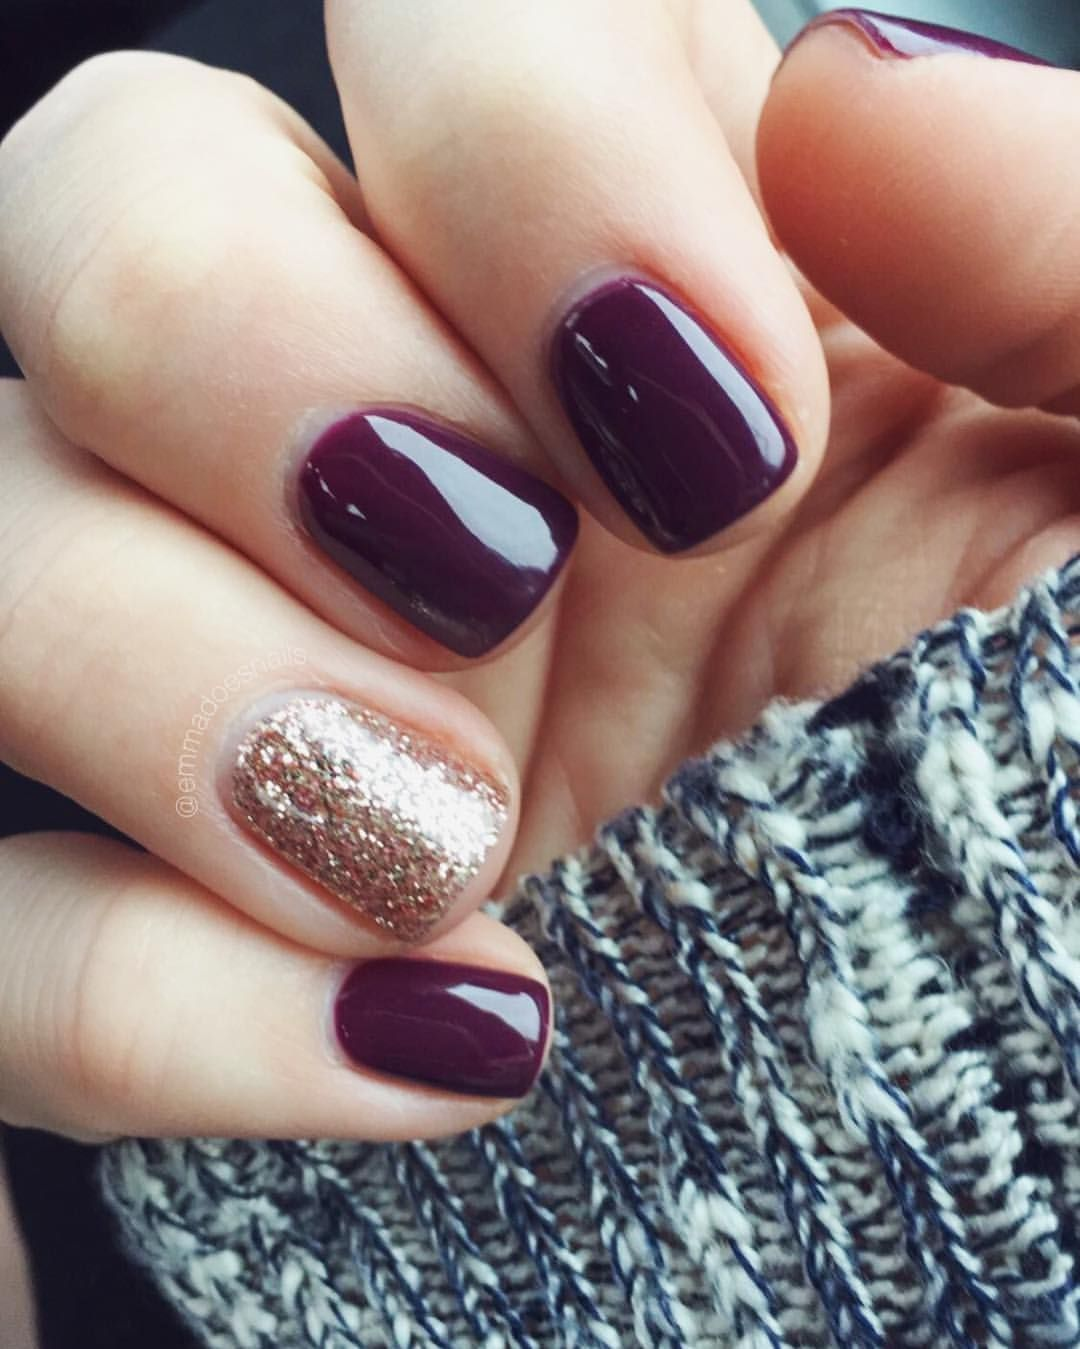 This looks like a perfect fall nail look | Nails Nails Nails ...